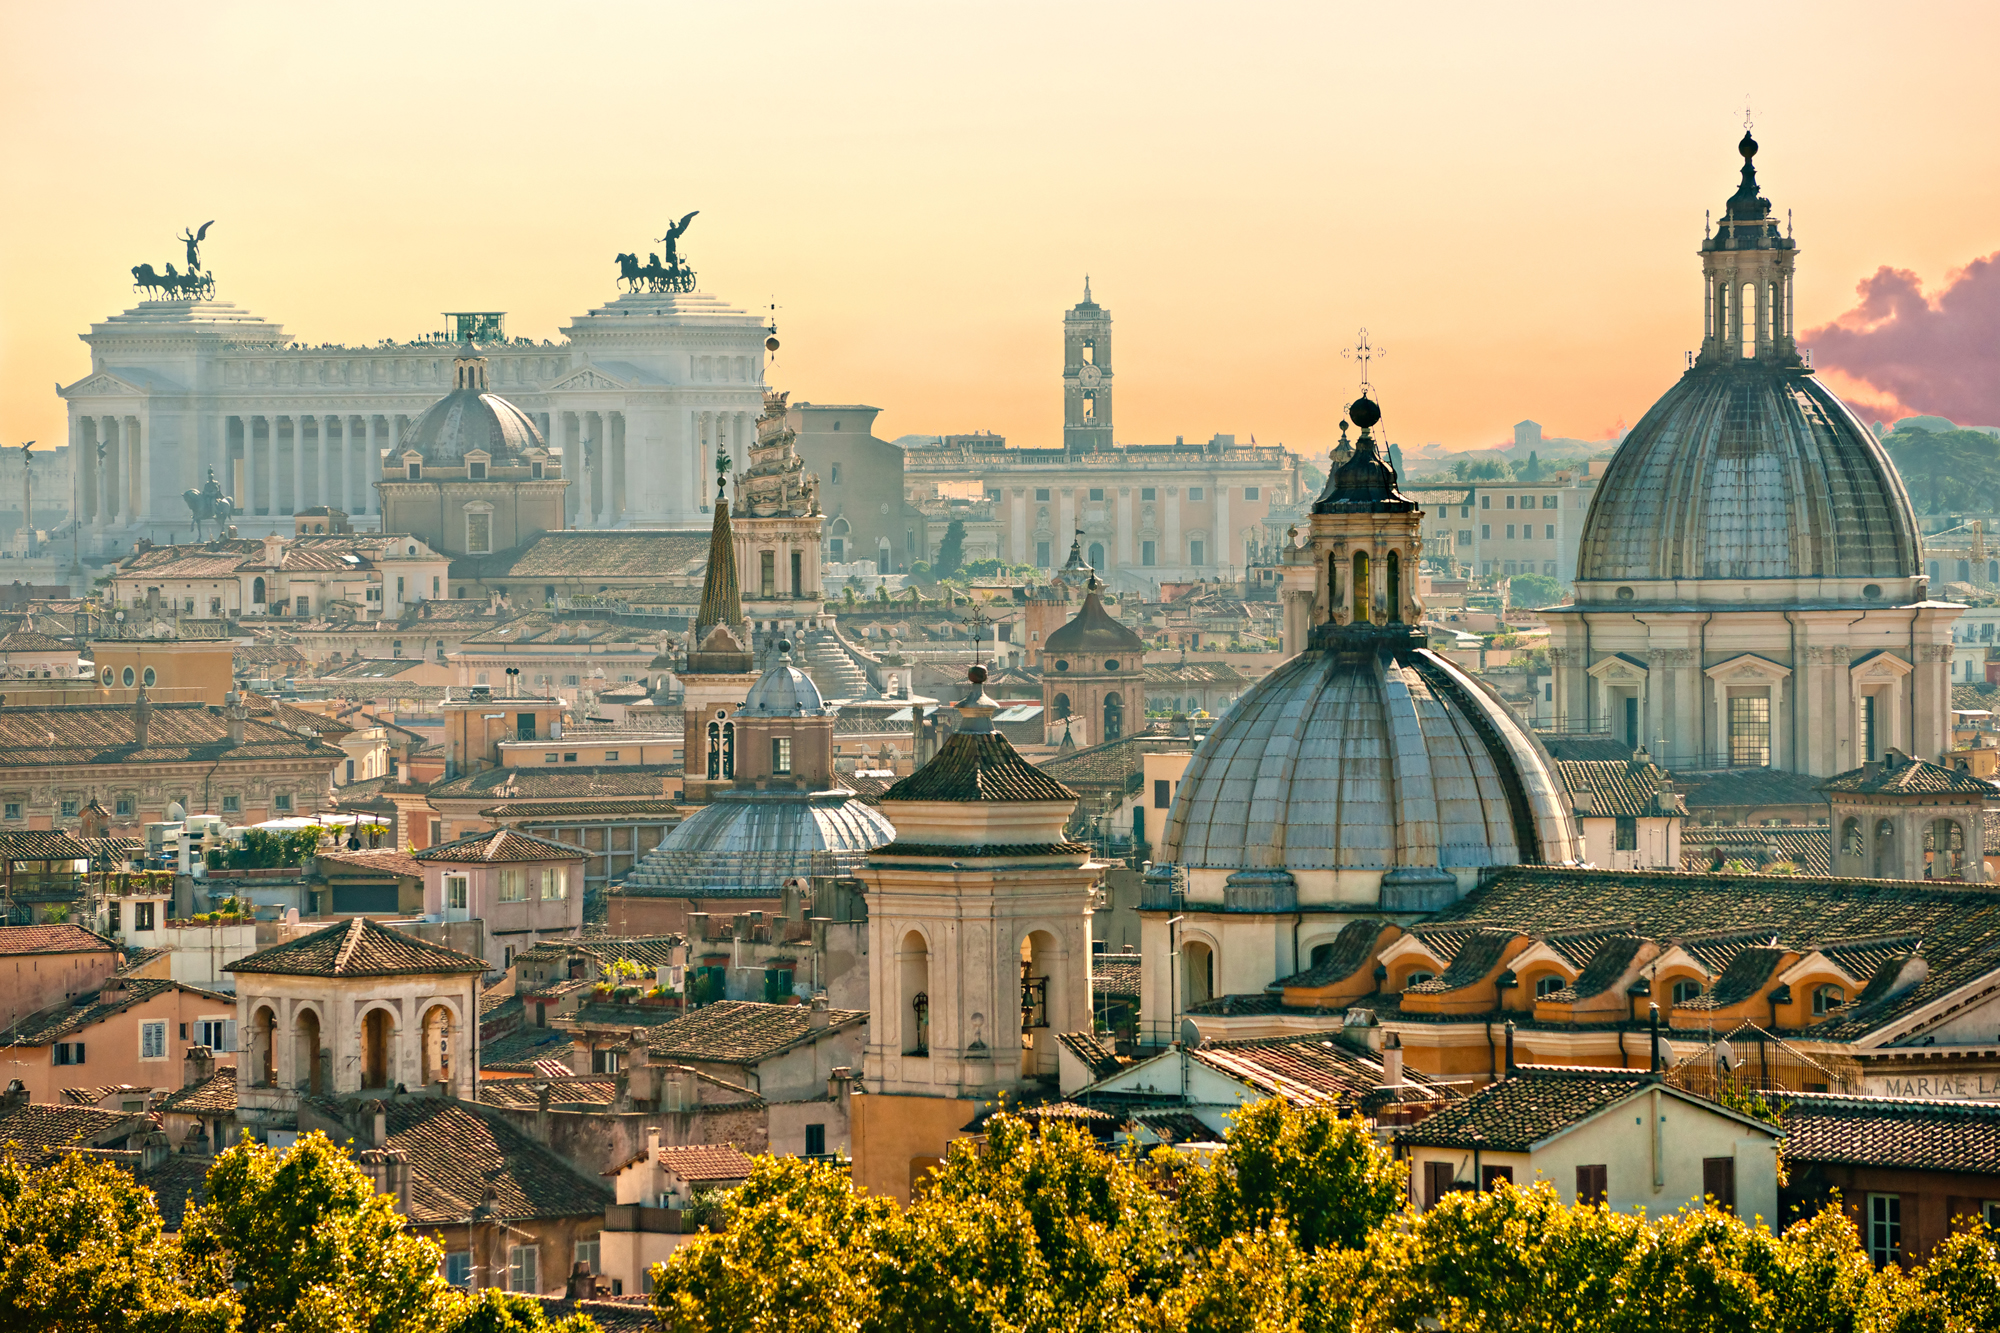 Rome from the rooftops - smaller size